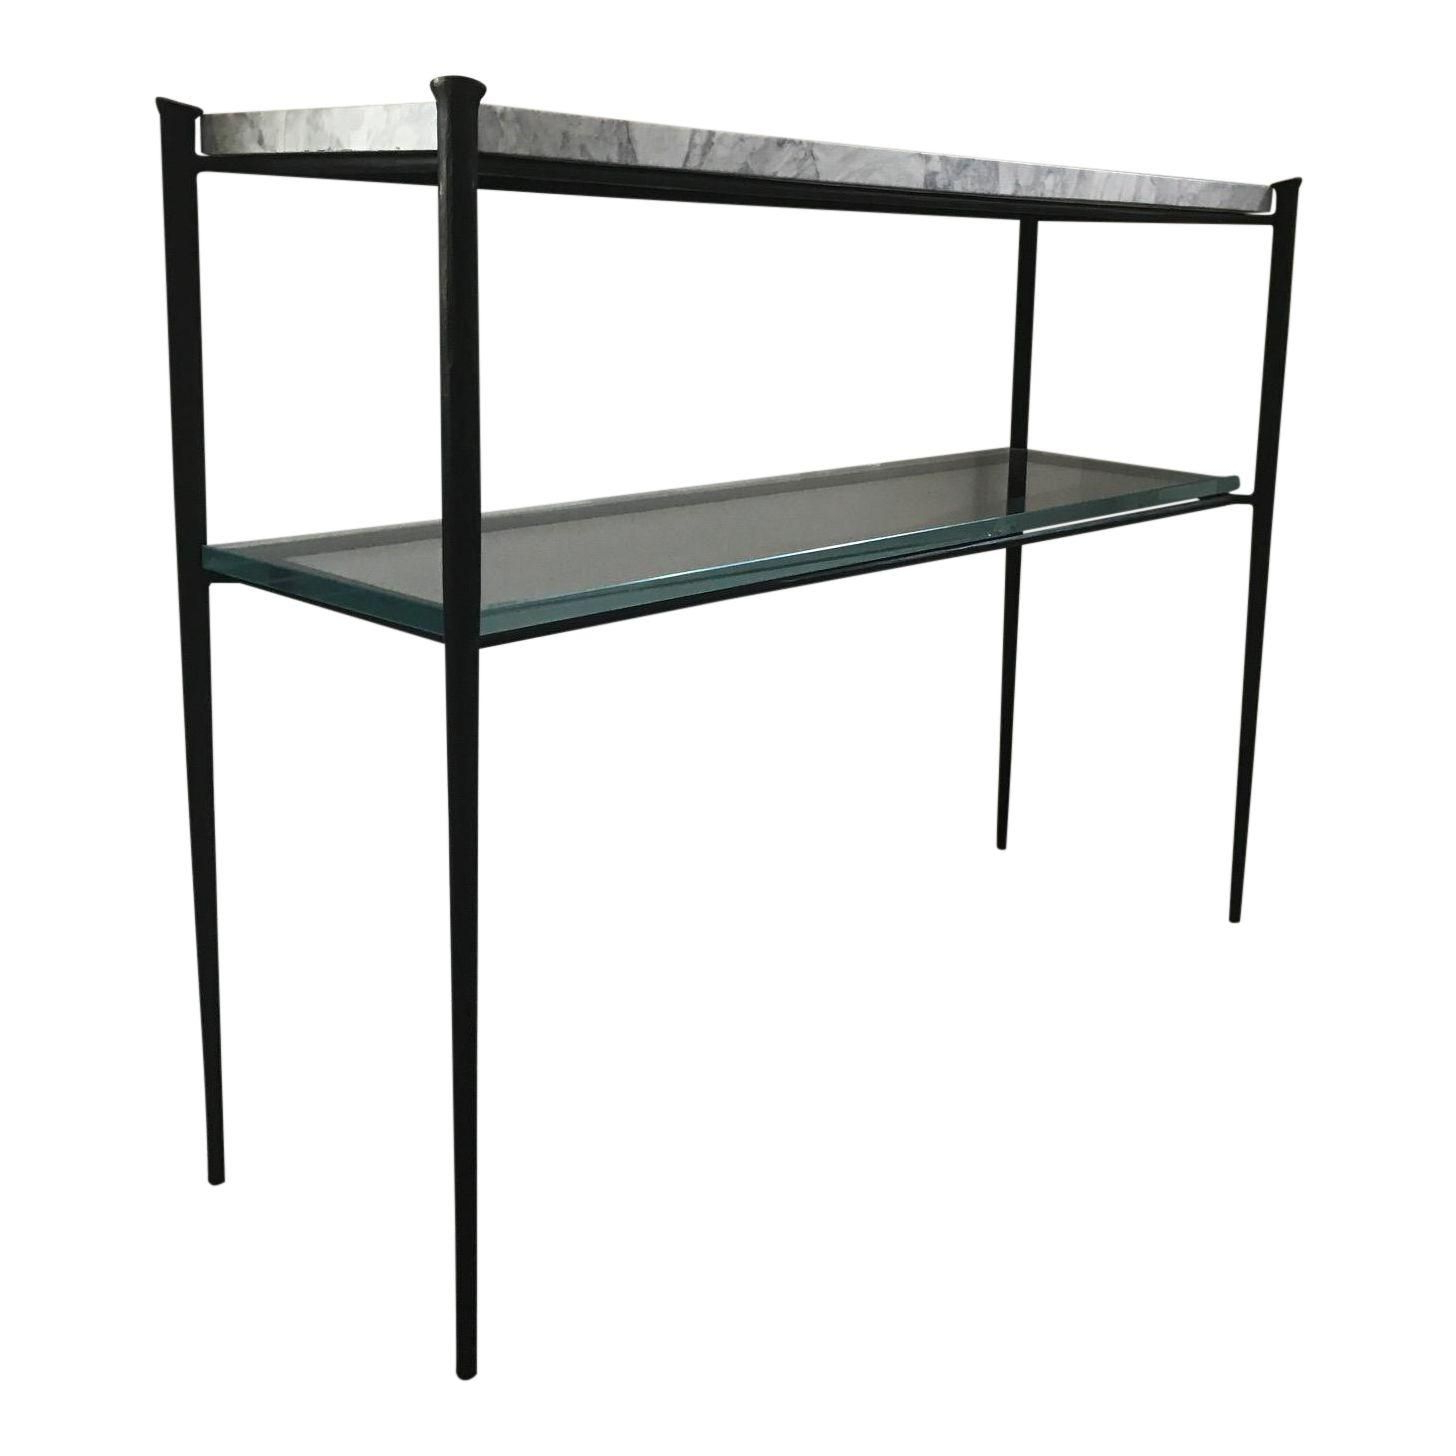 Modern Minimalist, Console Tables Pertaining To Favorite Parsons Black Marble Top & Brass Base 48x16 Console Tables (View 13 of 20)